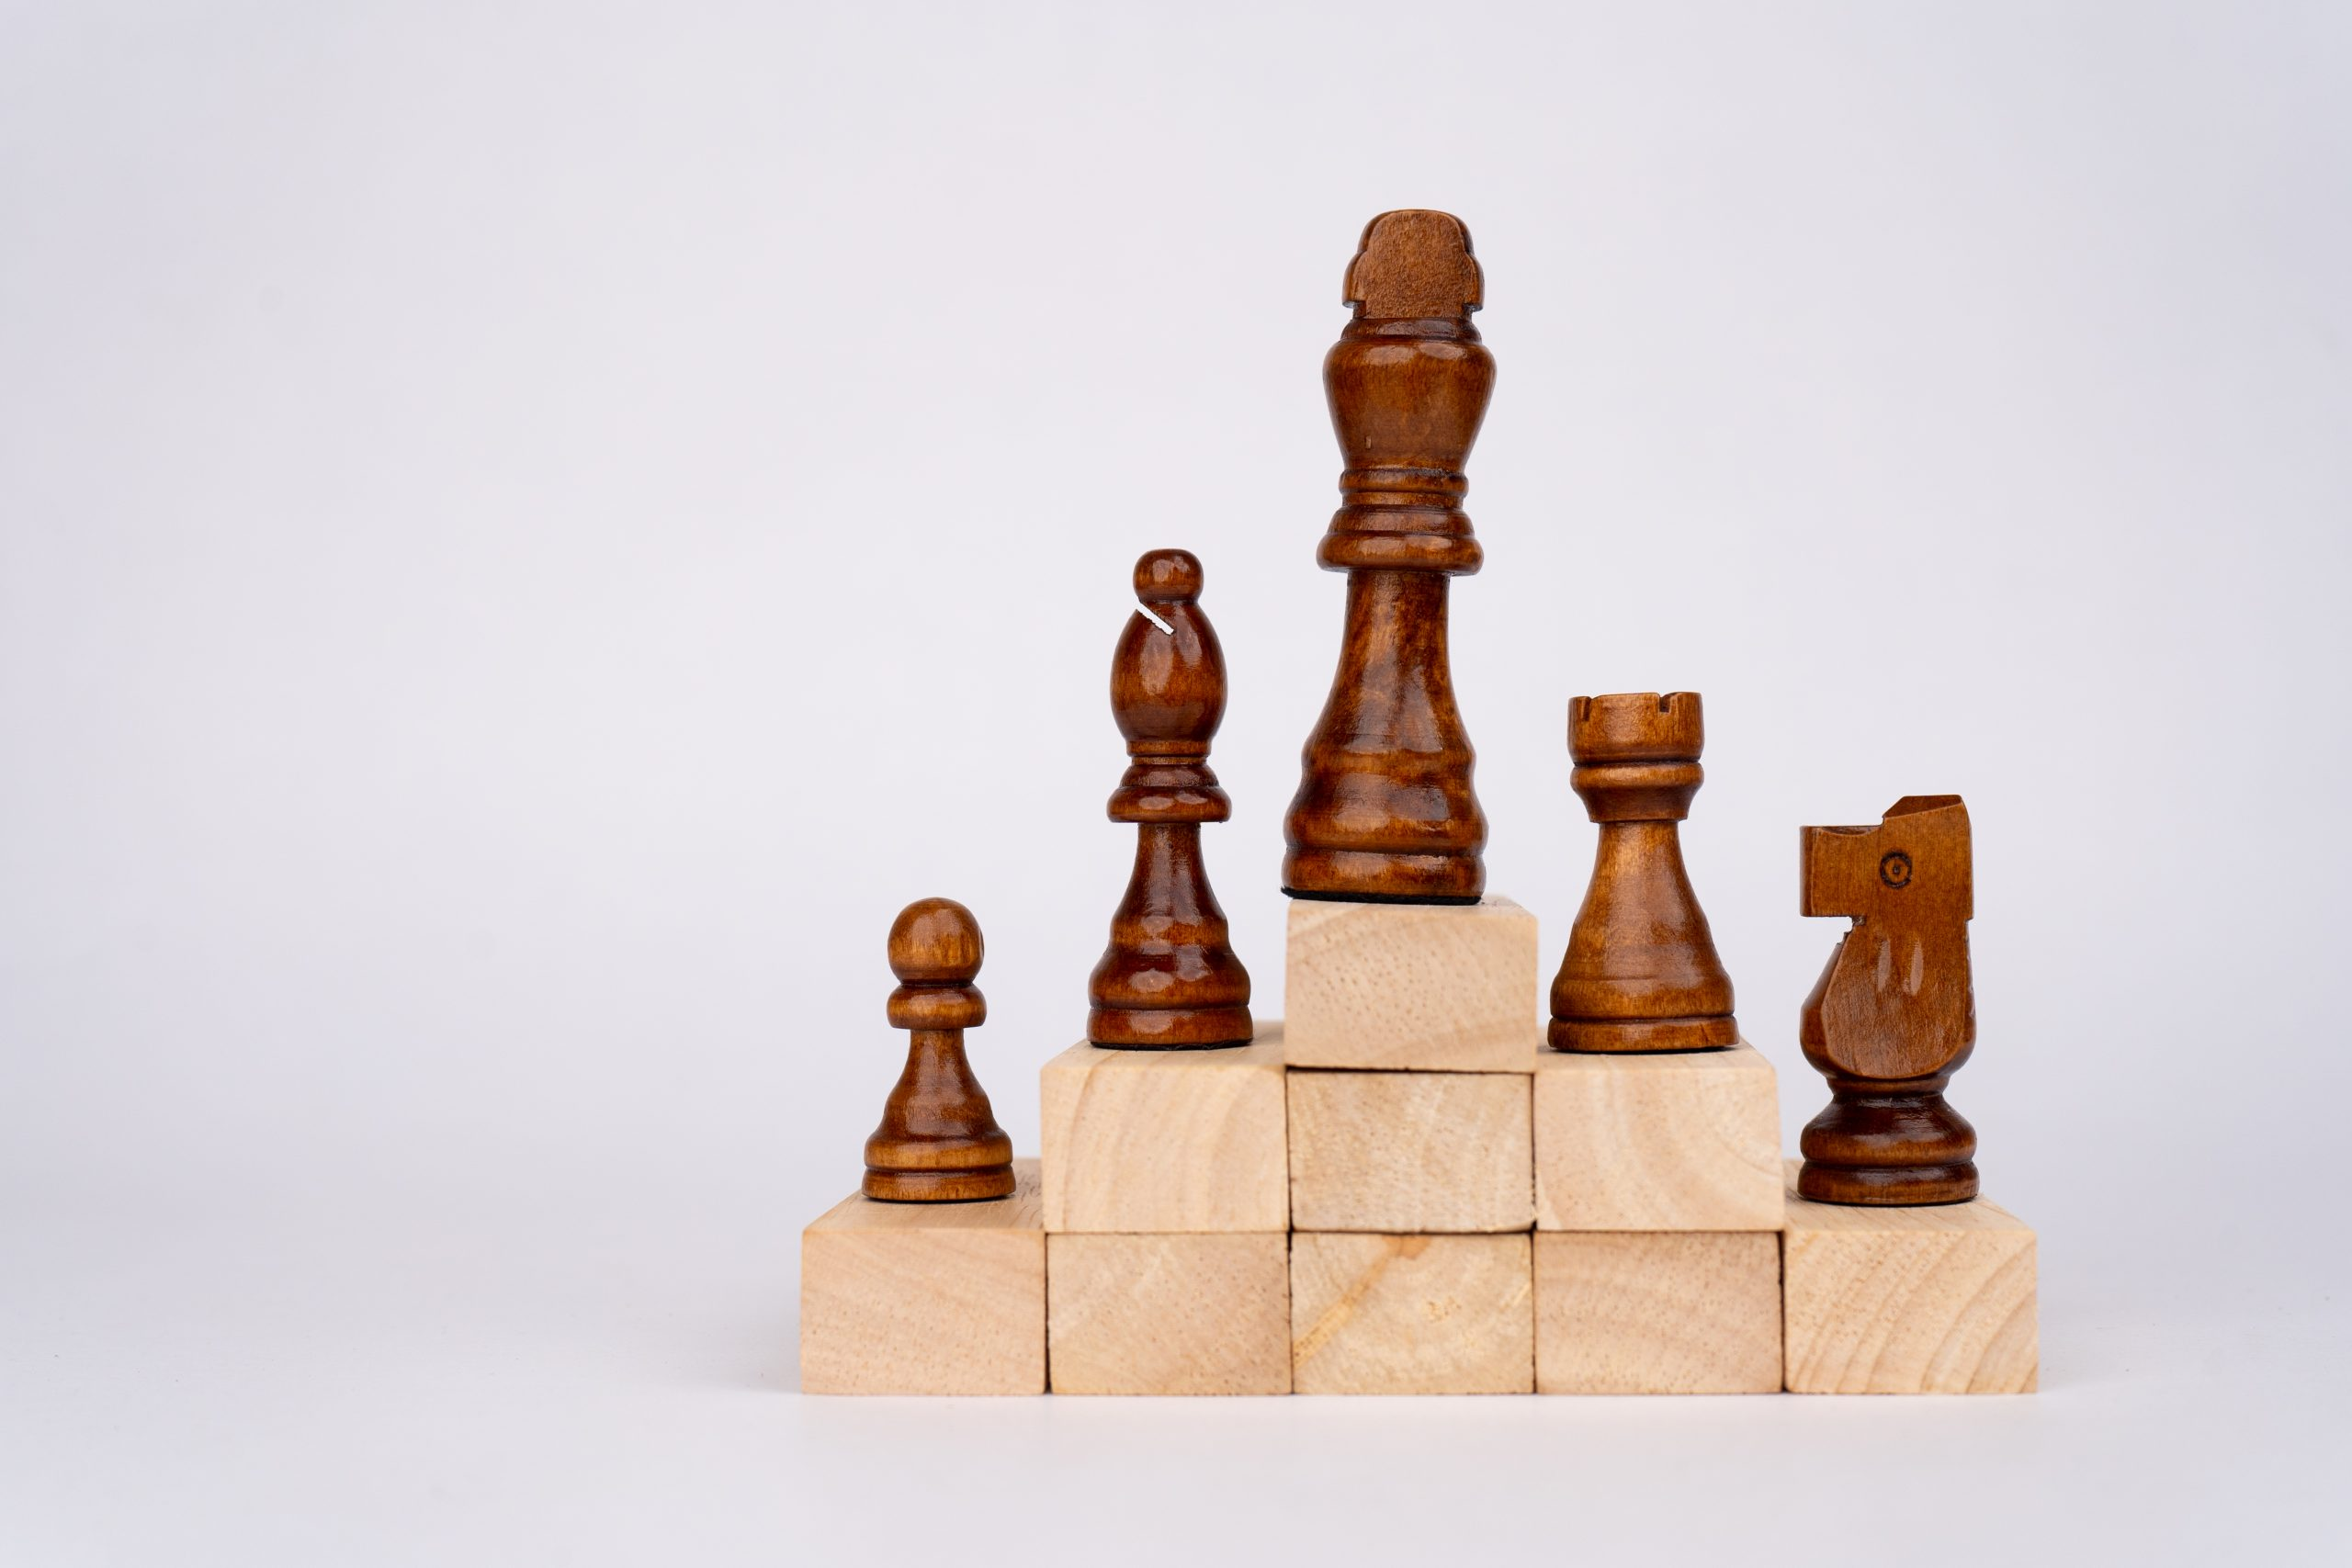 Black chess pieces on wooden blocks